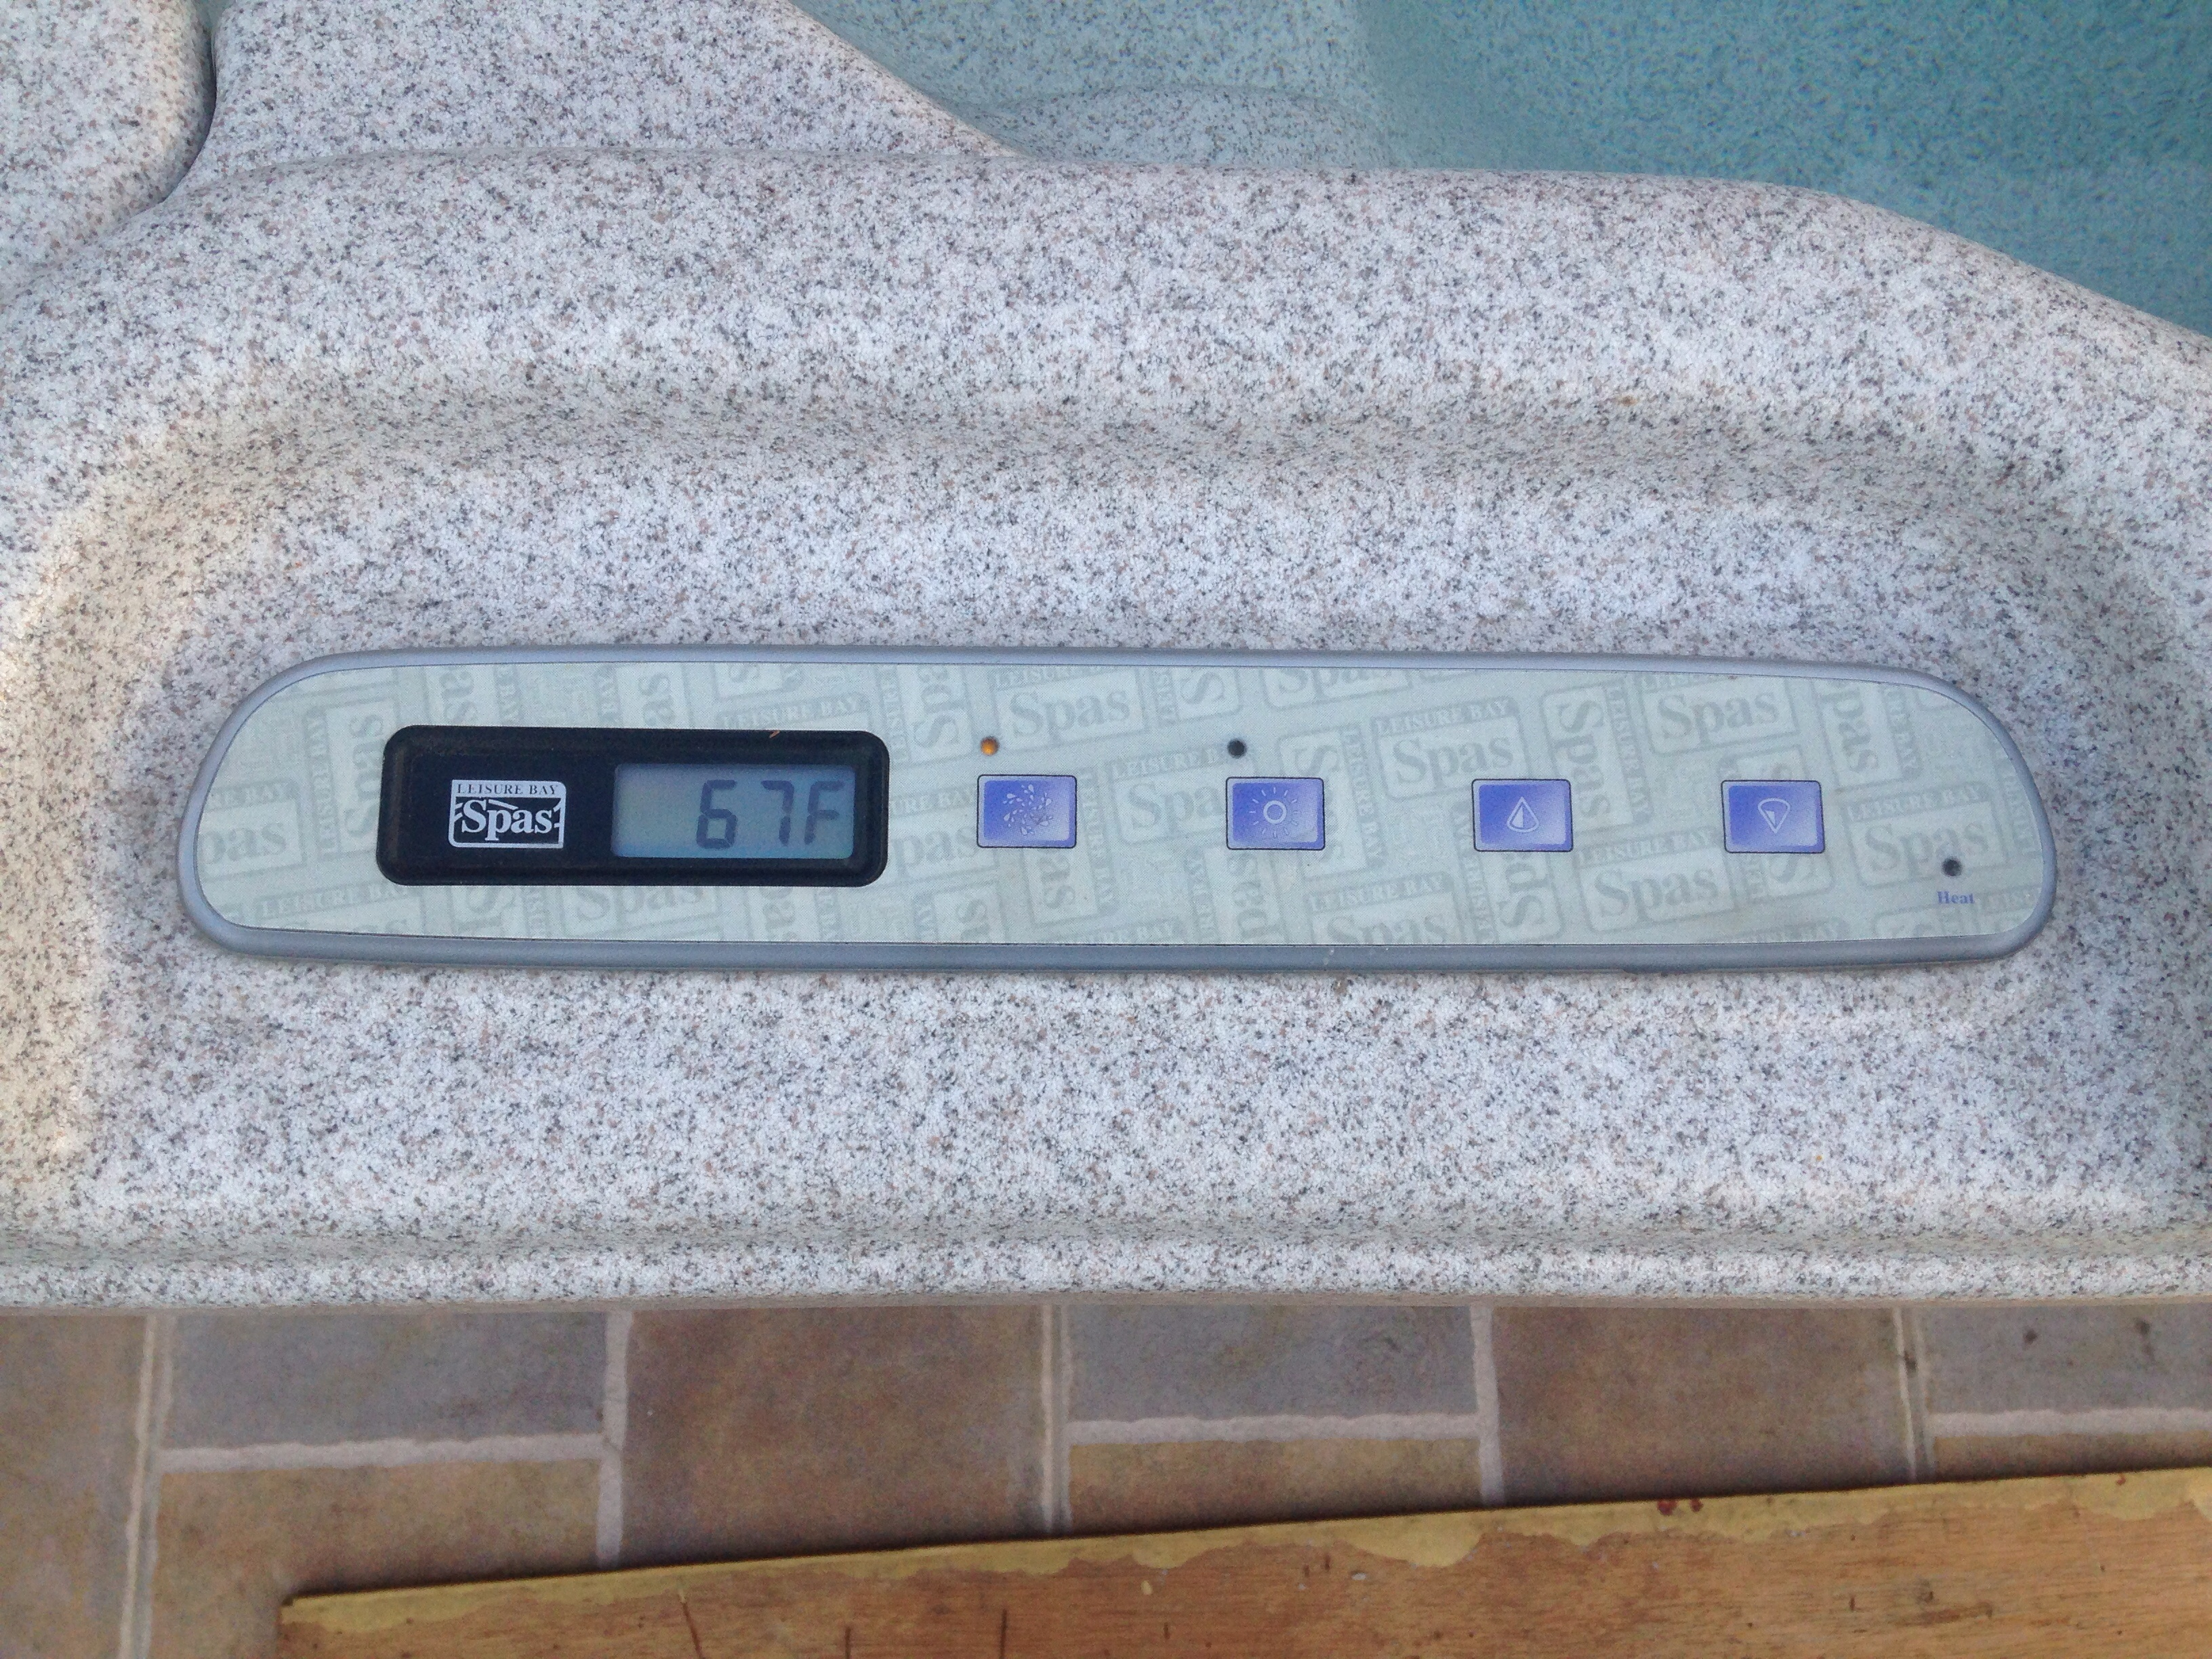 I Own An Leisure Bay Spa My Heater Is Not Working The